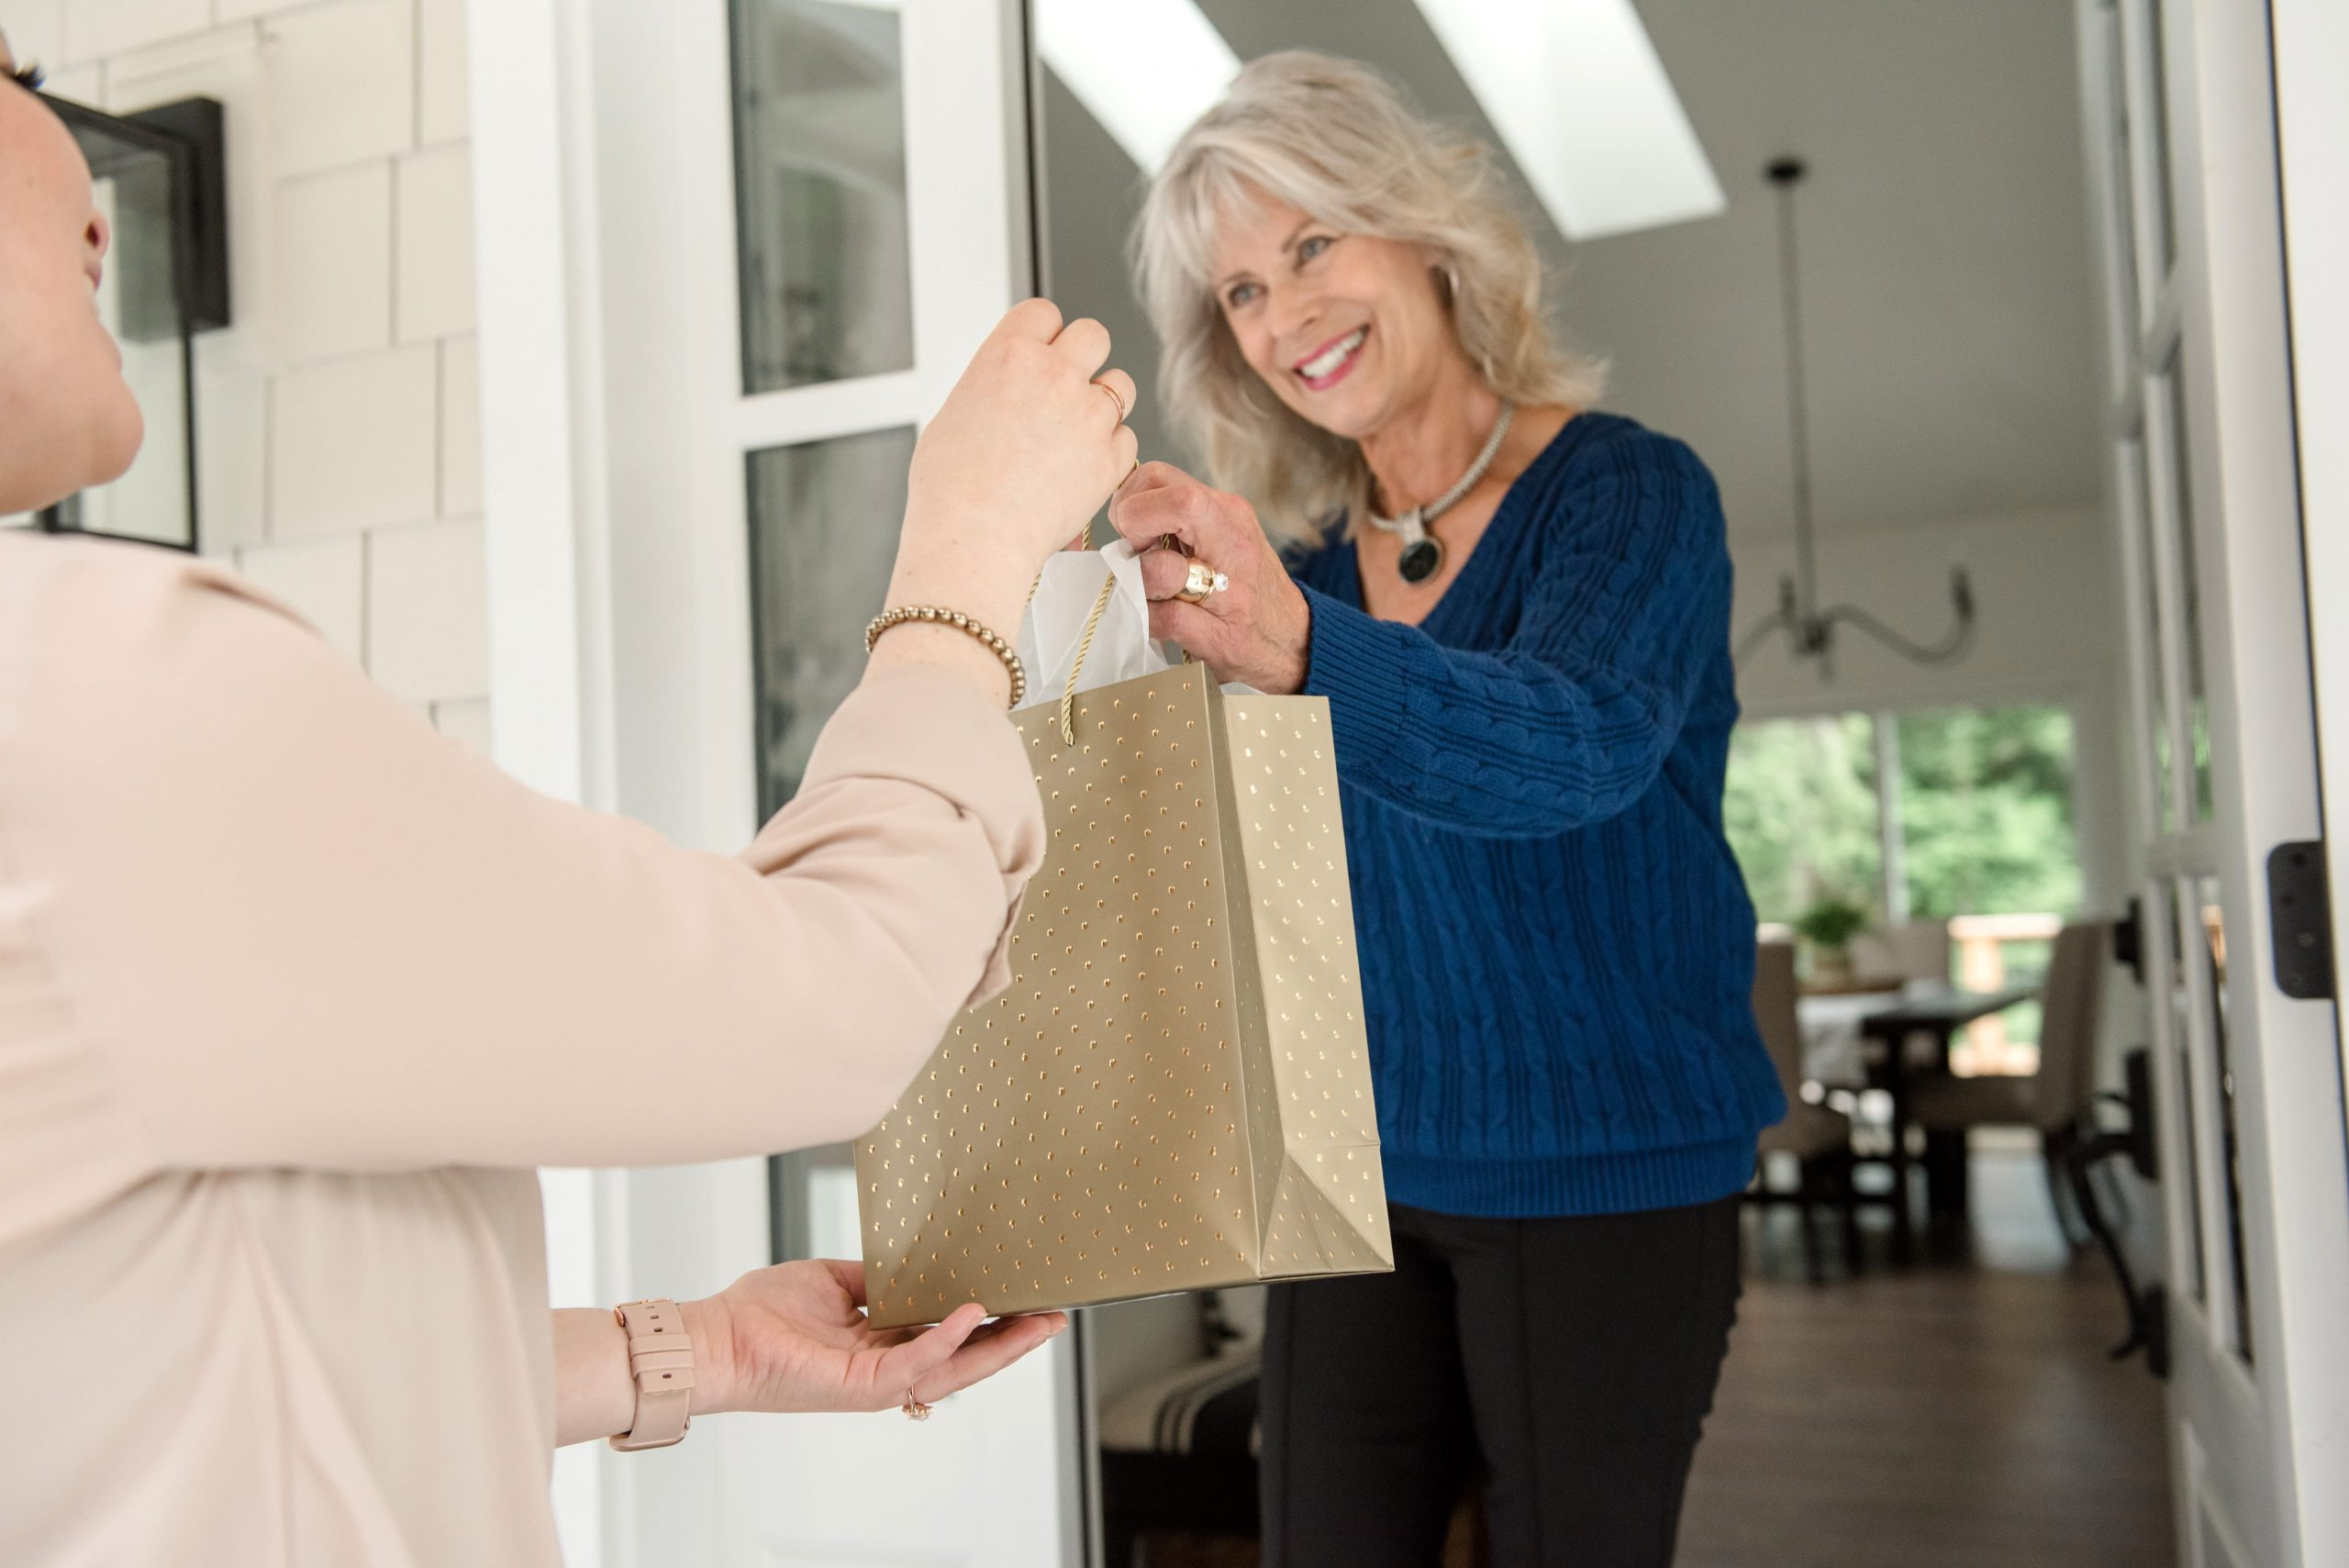 Holly Reynolds, Windermere, Real Estate, Whidbey Island, Washington, Passing gift with a smile